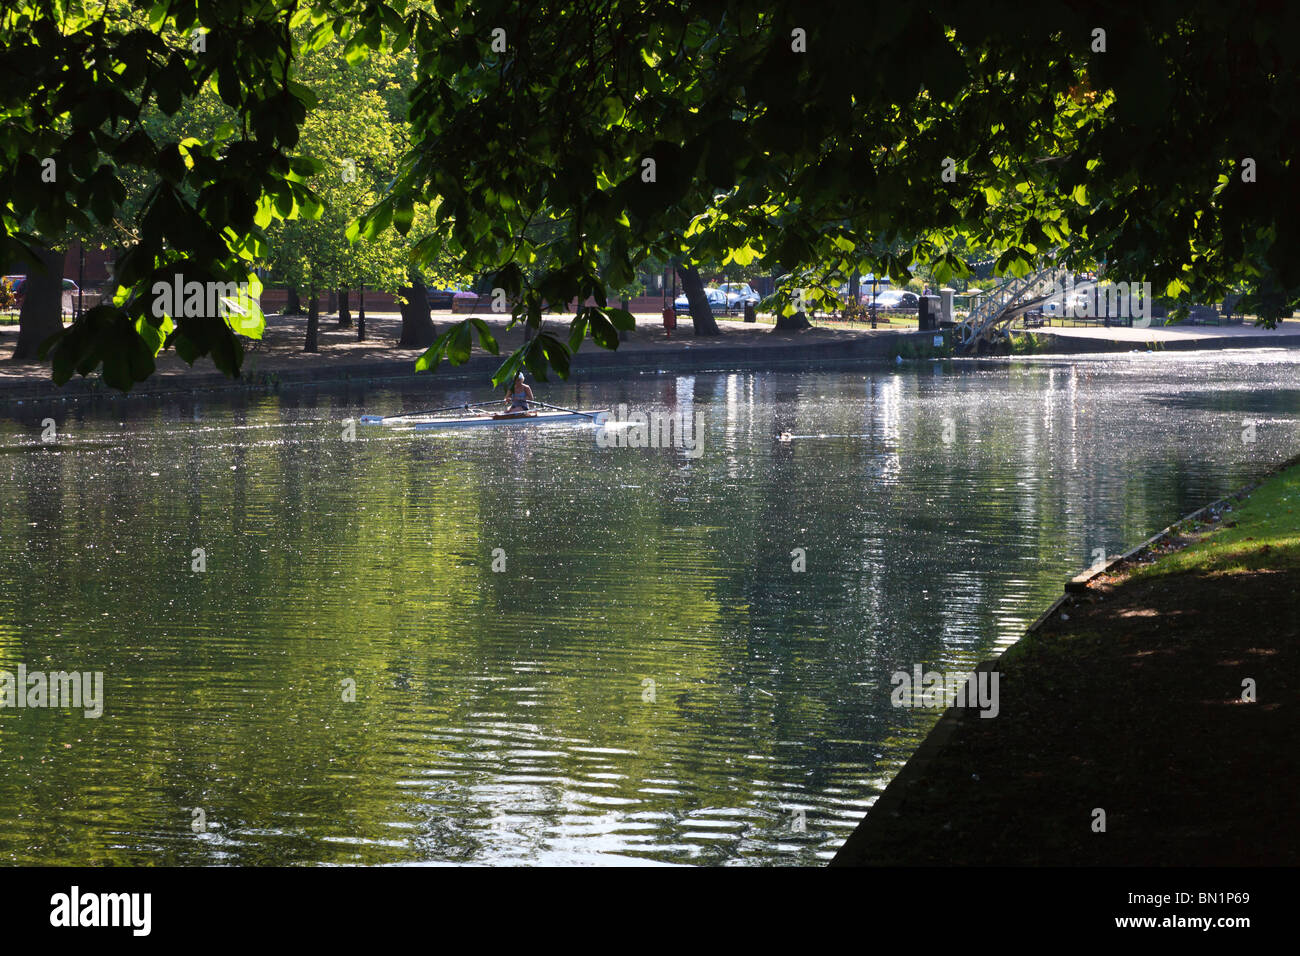 Woman skulling on the River Great Ouse in Bedford, backlit, a good illustration of Contre jour and overhanging shade, - Stock Image